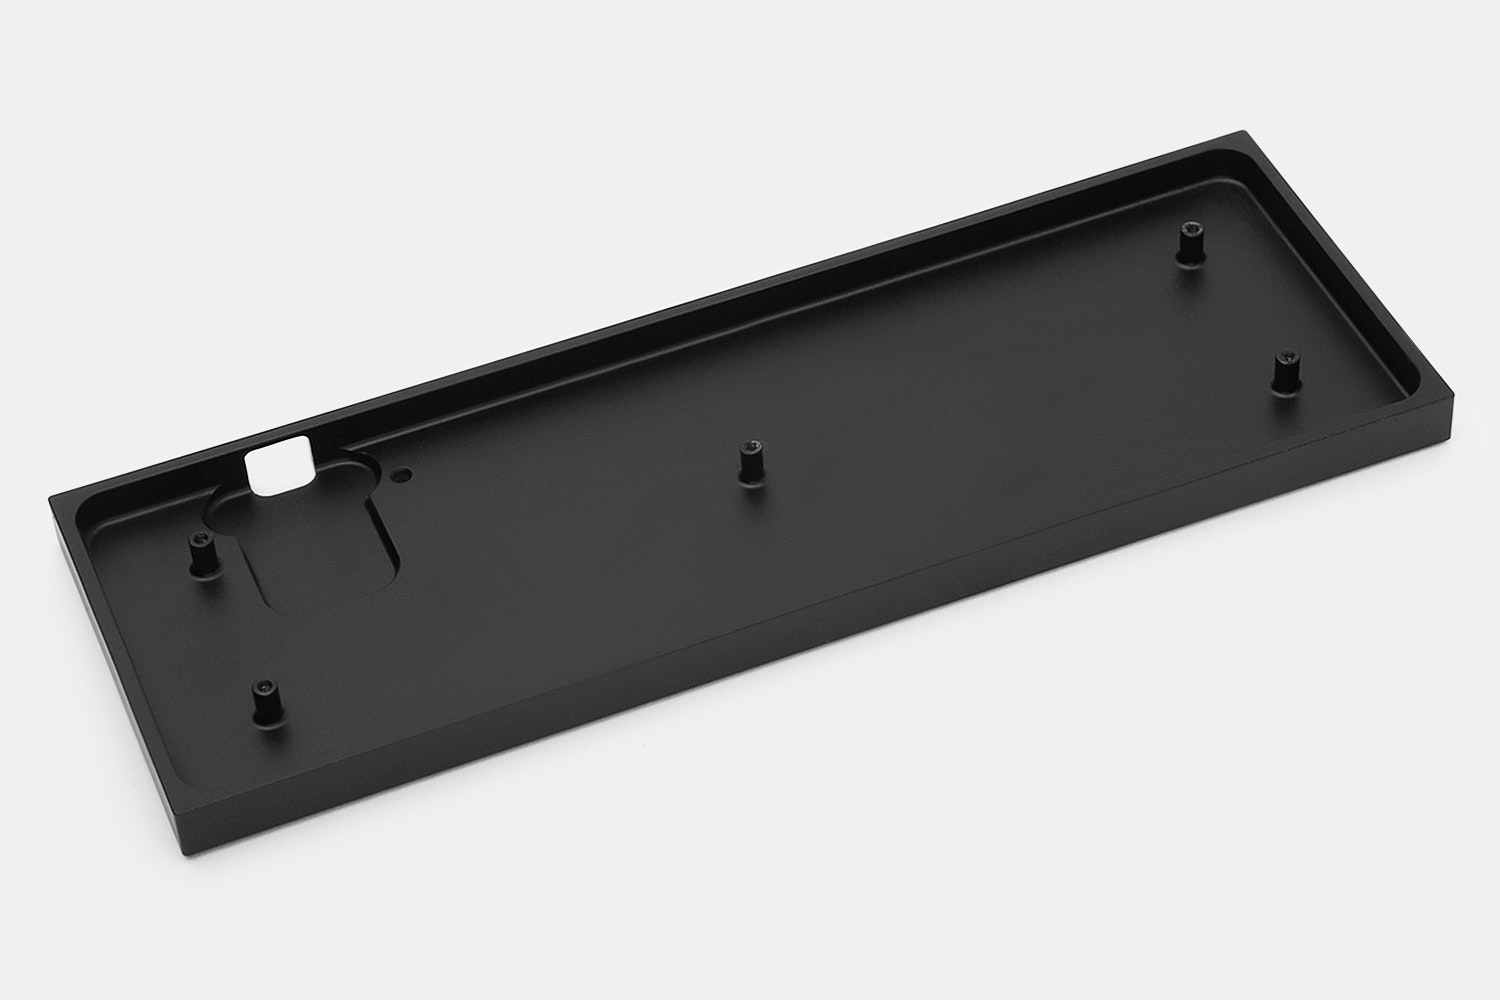 Planck Keyboard Case (B-Stock)